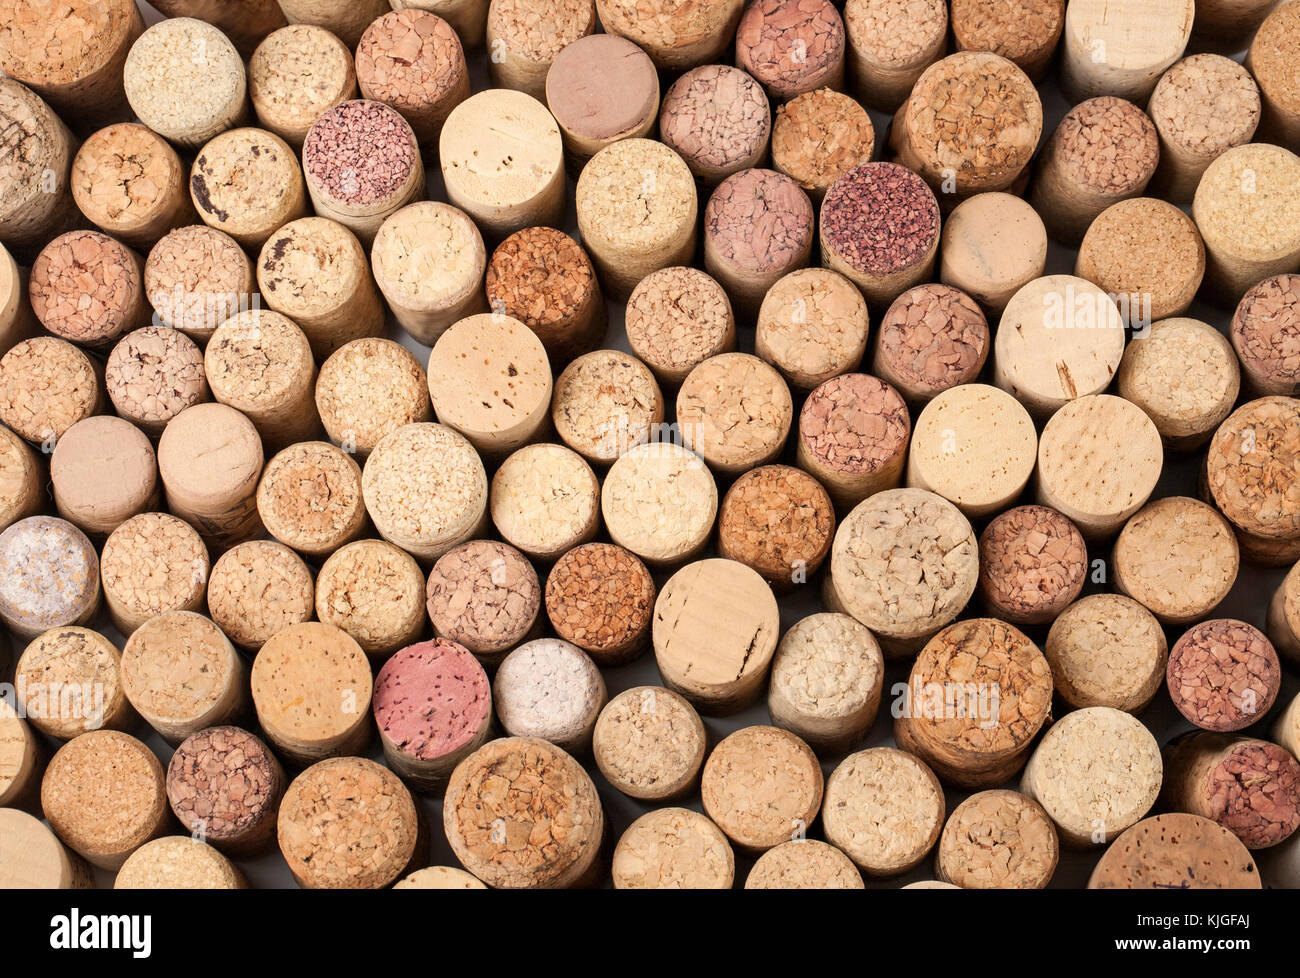 many different wine corks in the background, texture - Stock Image